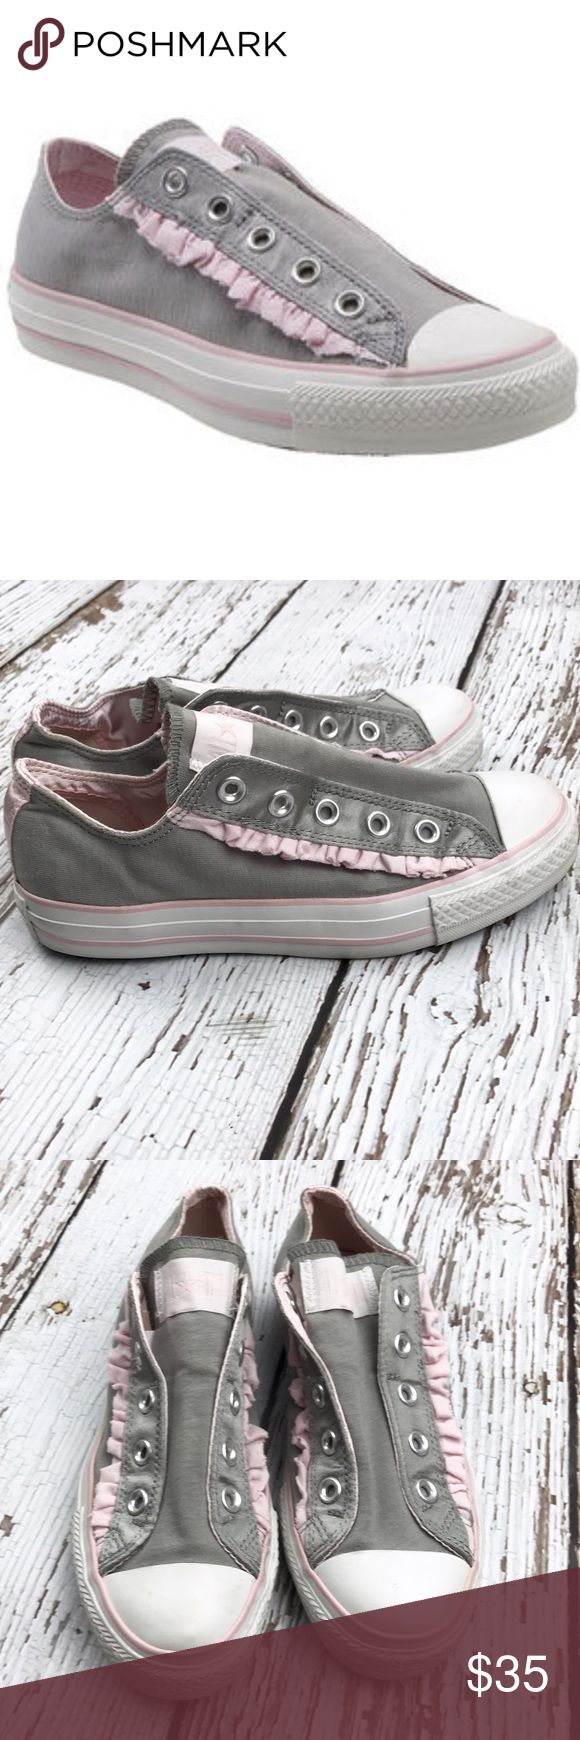 💕SALE💕Converse Gray & Pink Ruffled Chucks Adorable 💕Converse Gray & Pink Ruffled Chucks worn only for few hours so basically new Converse Shoes Sneakers